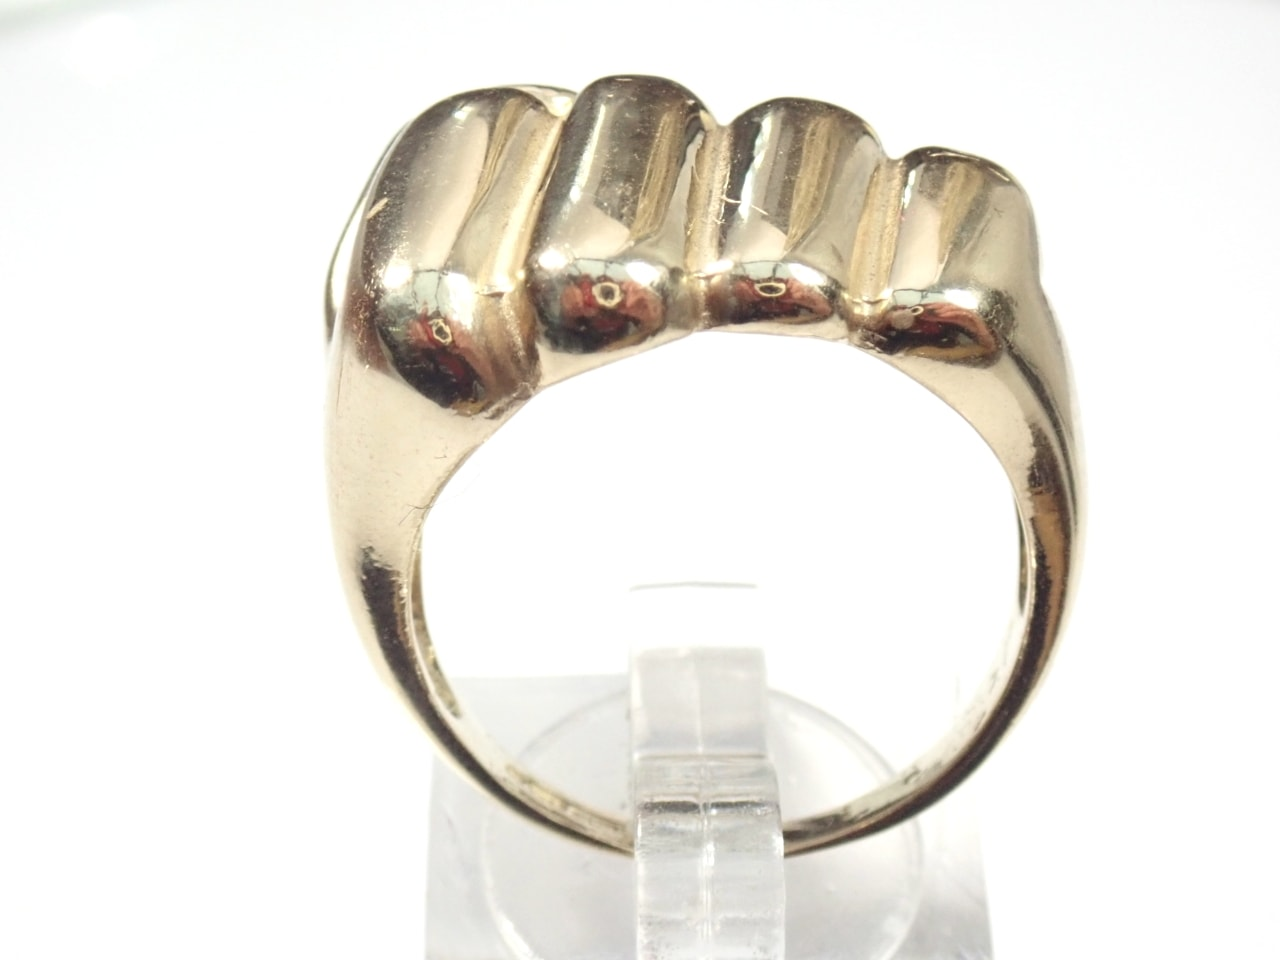 Solid 9ct Gold Fist Ring With Cubic Zirconia 10.4gms Size U1/2